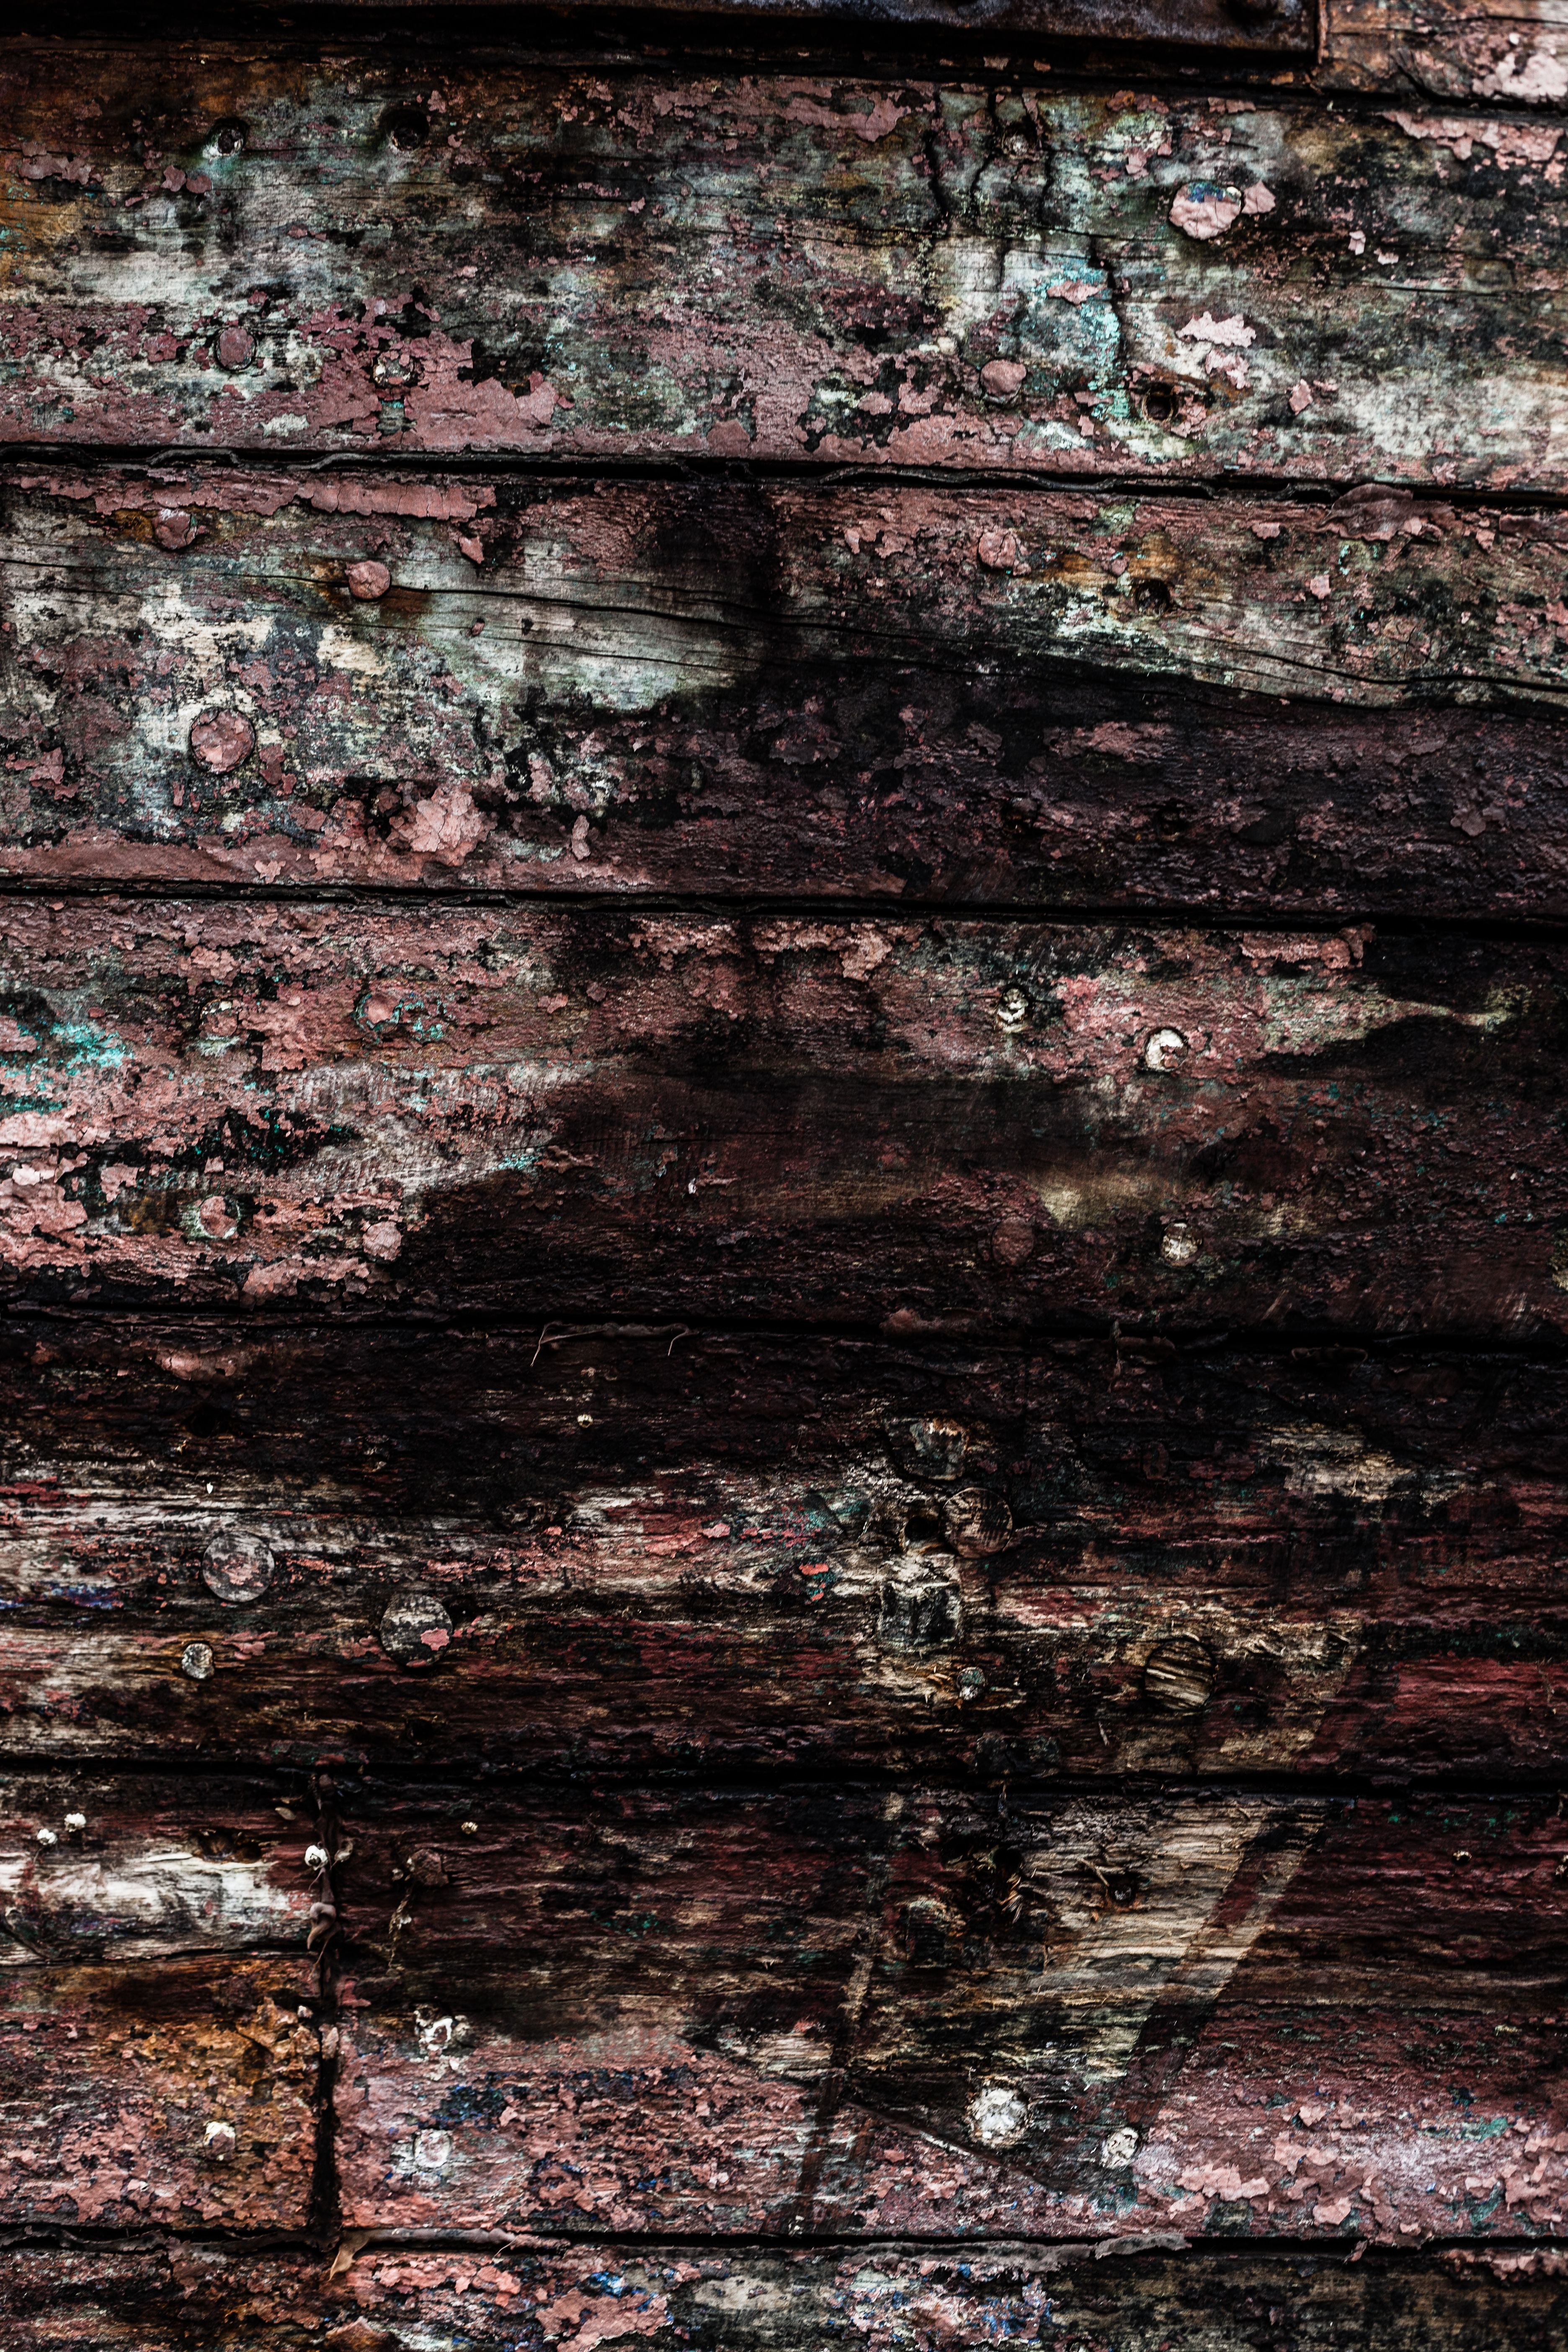 Grunge Gritty Wood, Damaged, Dirty, Gritty, Grunge, HQ Photo